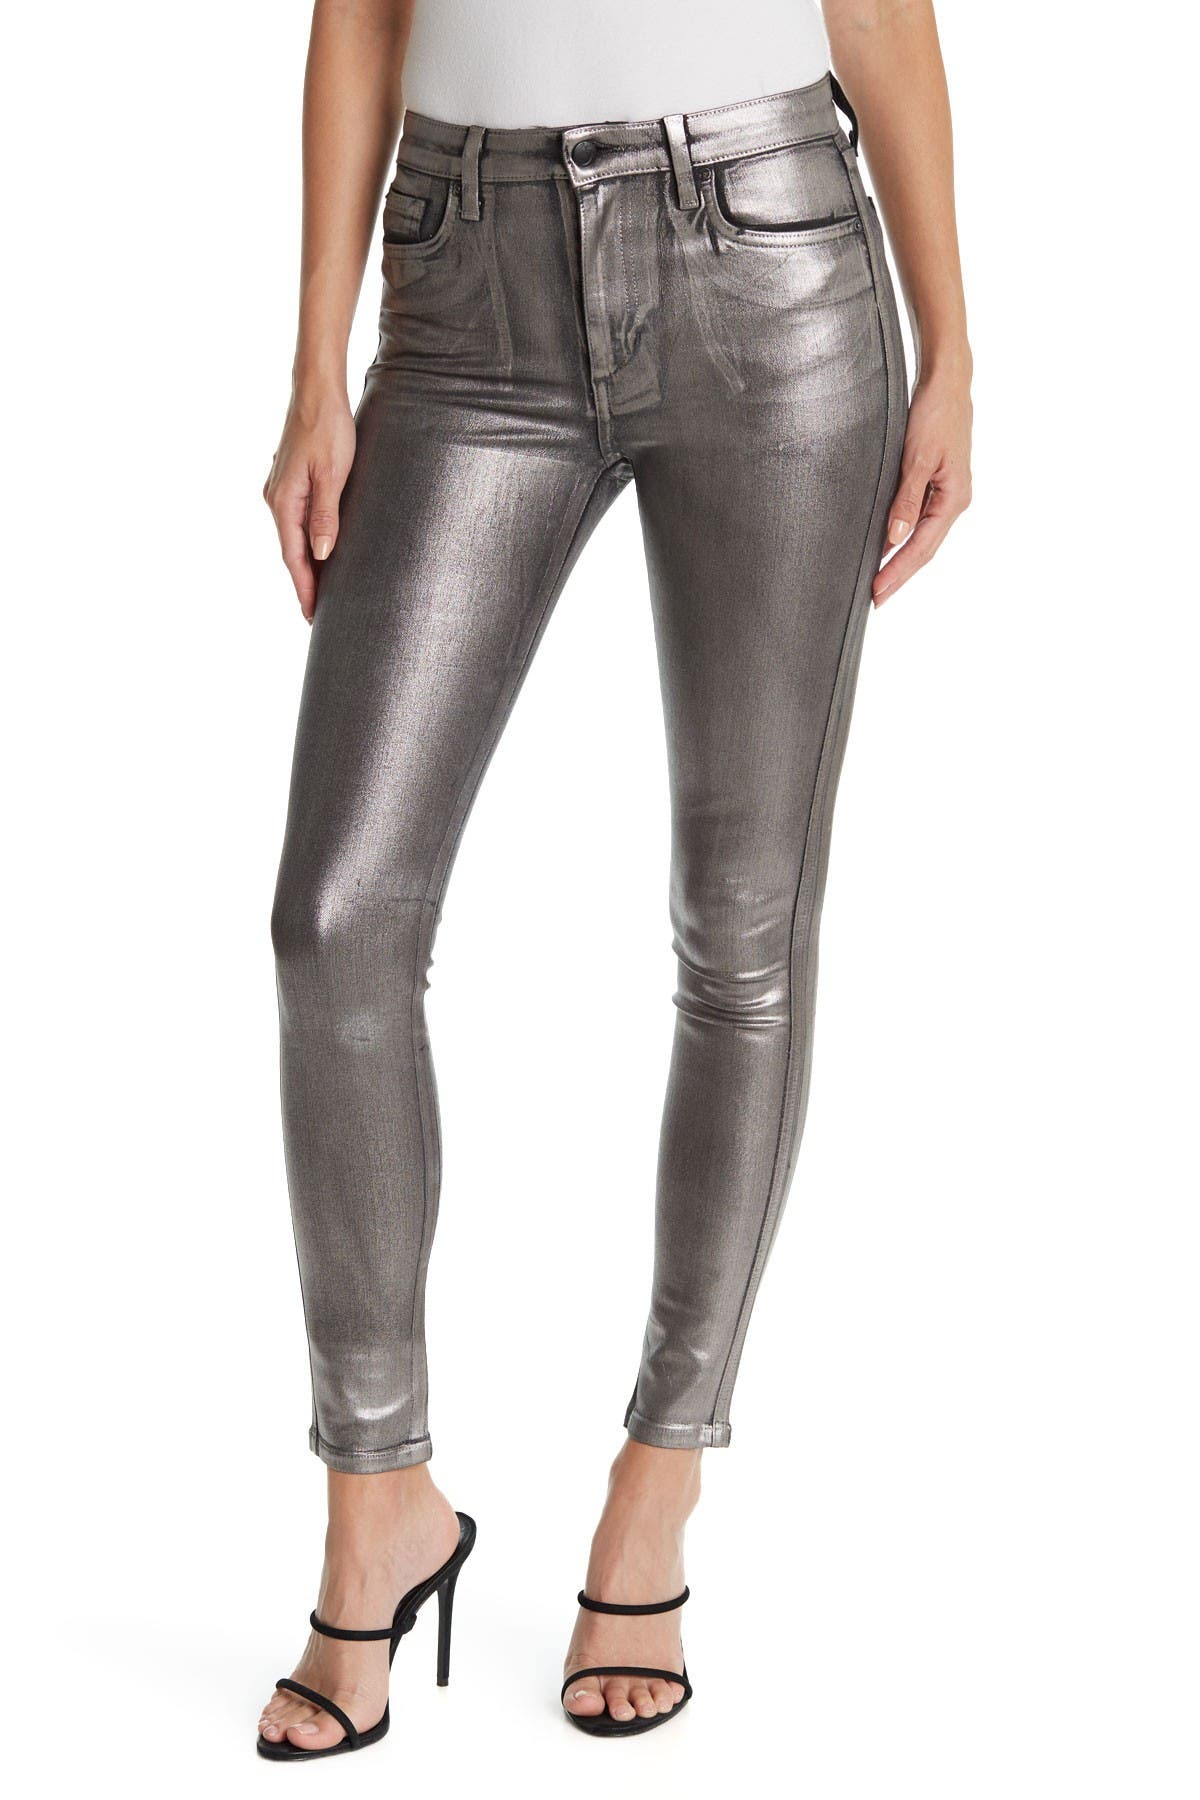 Image of Joe's Jeans Charlie Ankle Silver Foil Jeans